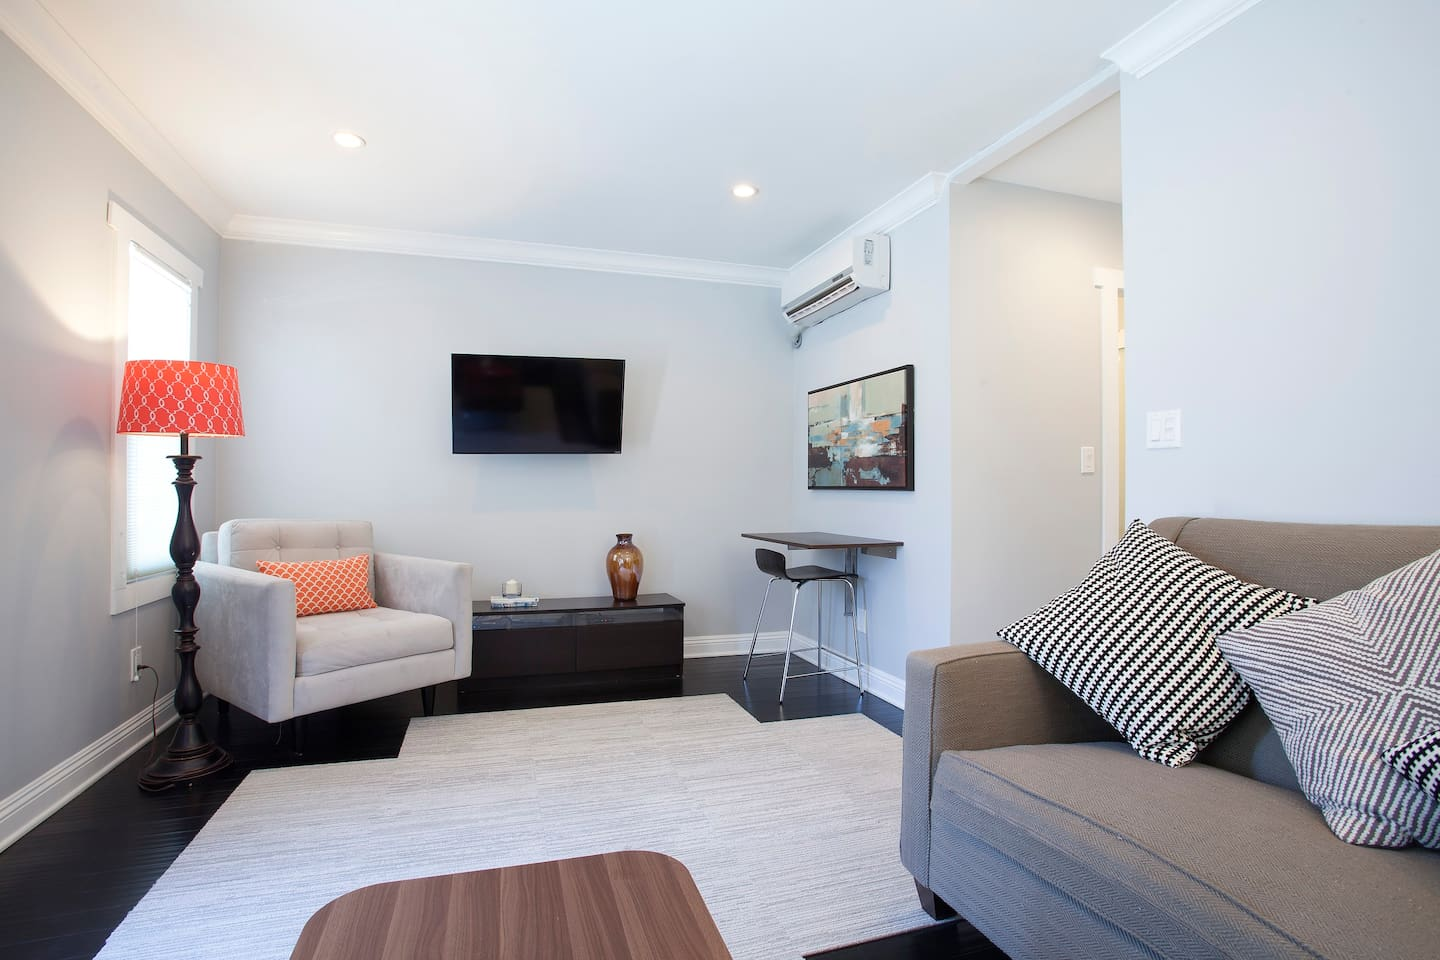 1 room in Royal Hospital, Chelsea, London, SW1 0AZ RoomsLocal image